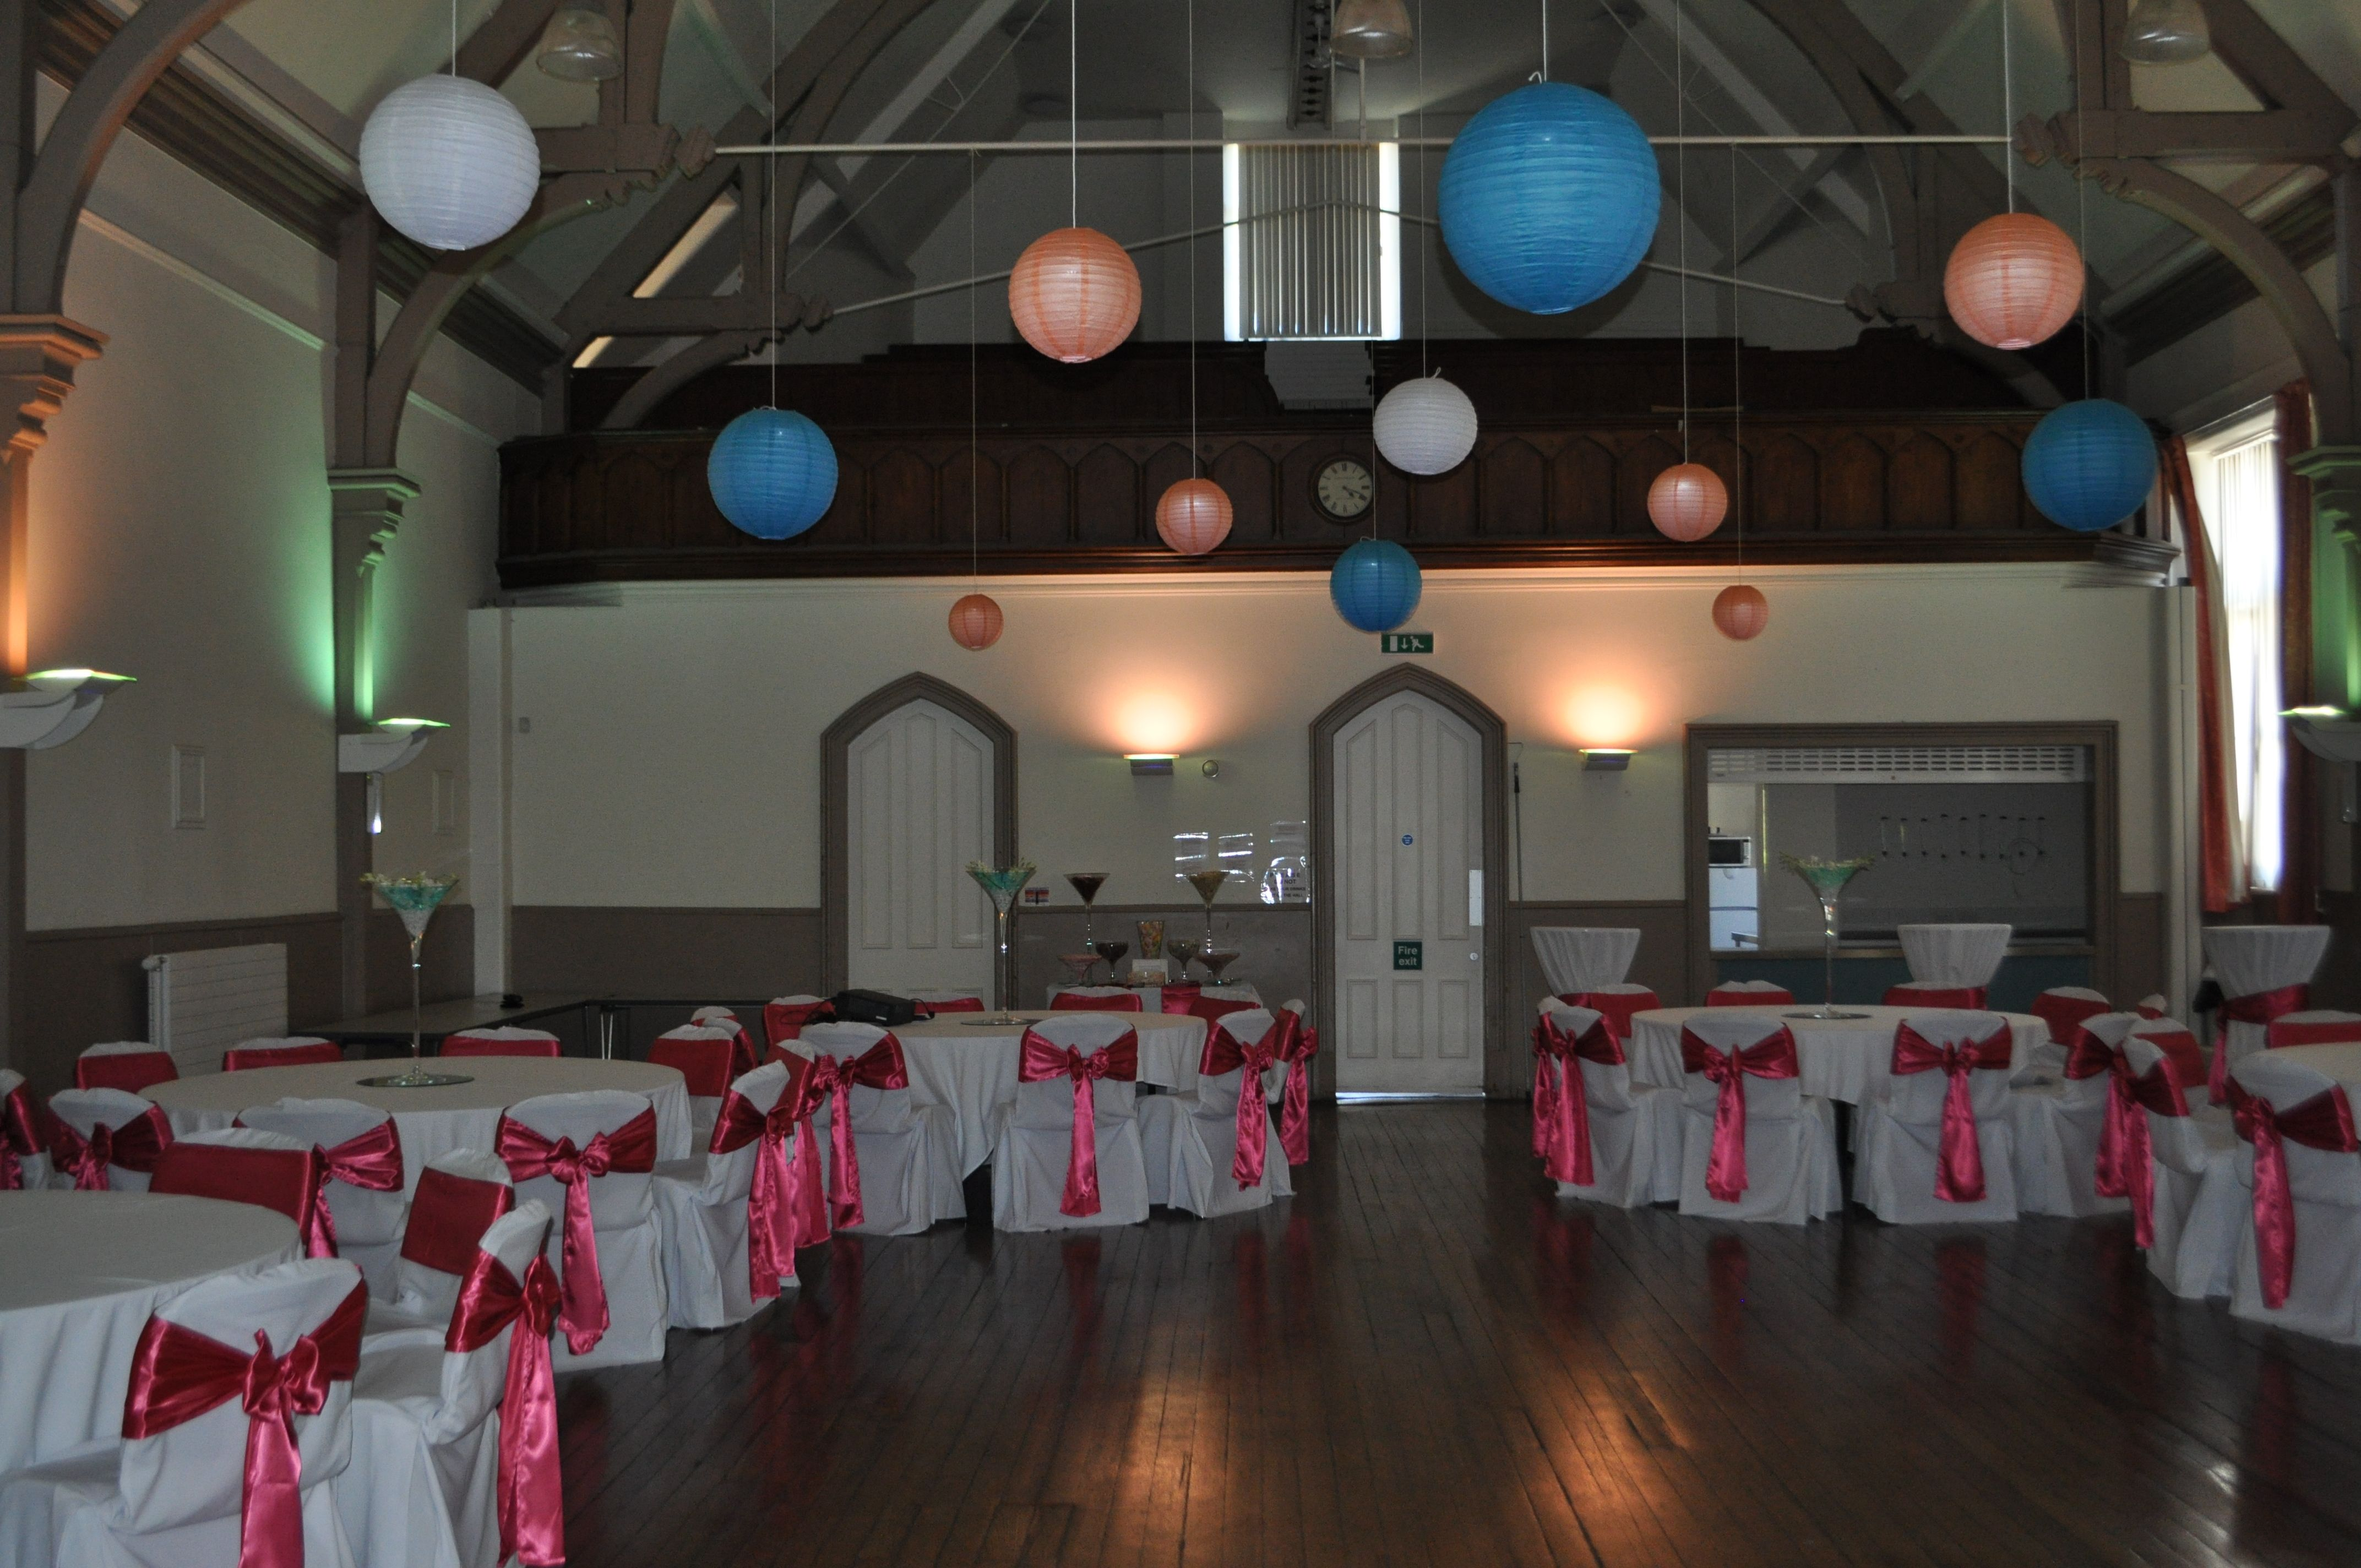 Anstruther And Other Fife Town Halls Wedding Venues Pinterest